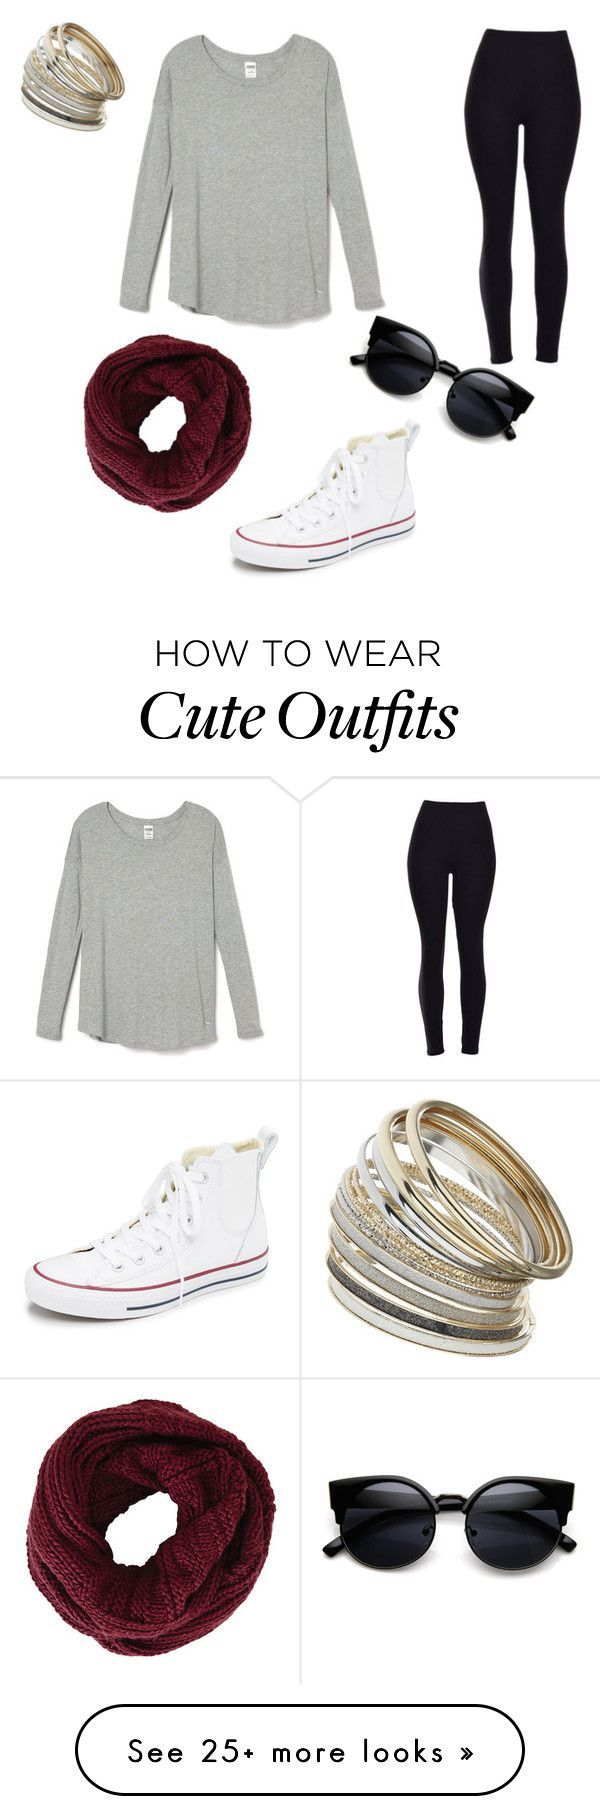 """Cute comfy outfit"" by emilymoore2134 on Polyvore featuring Converse, BCBGMAXAZRIA, Miss Selfridge, women's clothing, women's fashion, women, female, woman, misses and juniors"